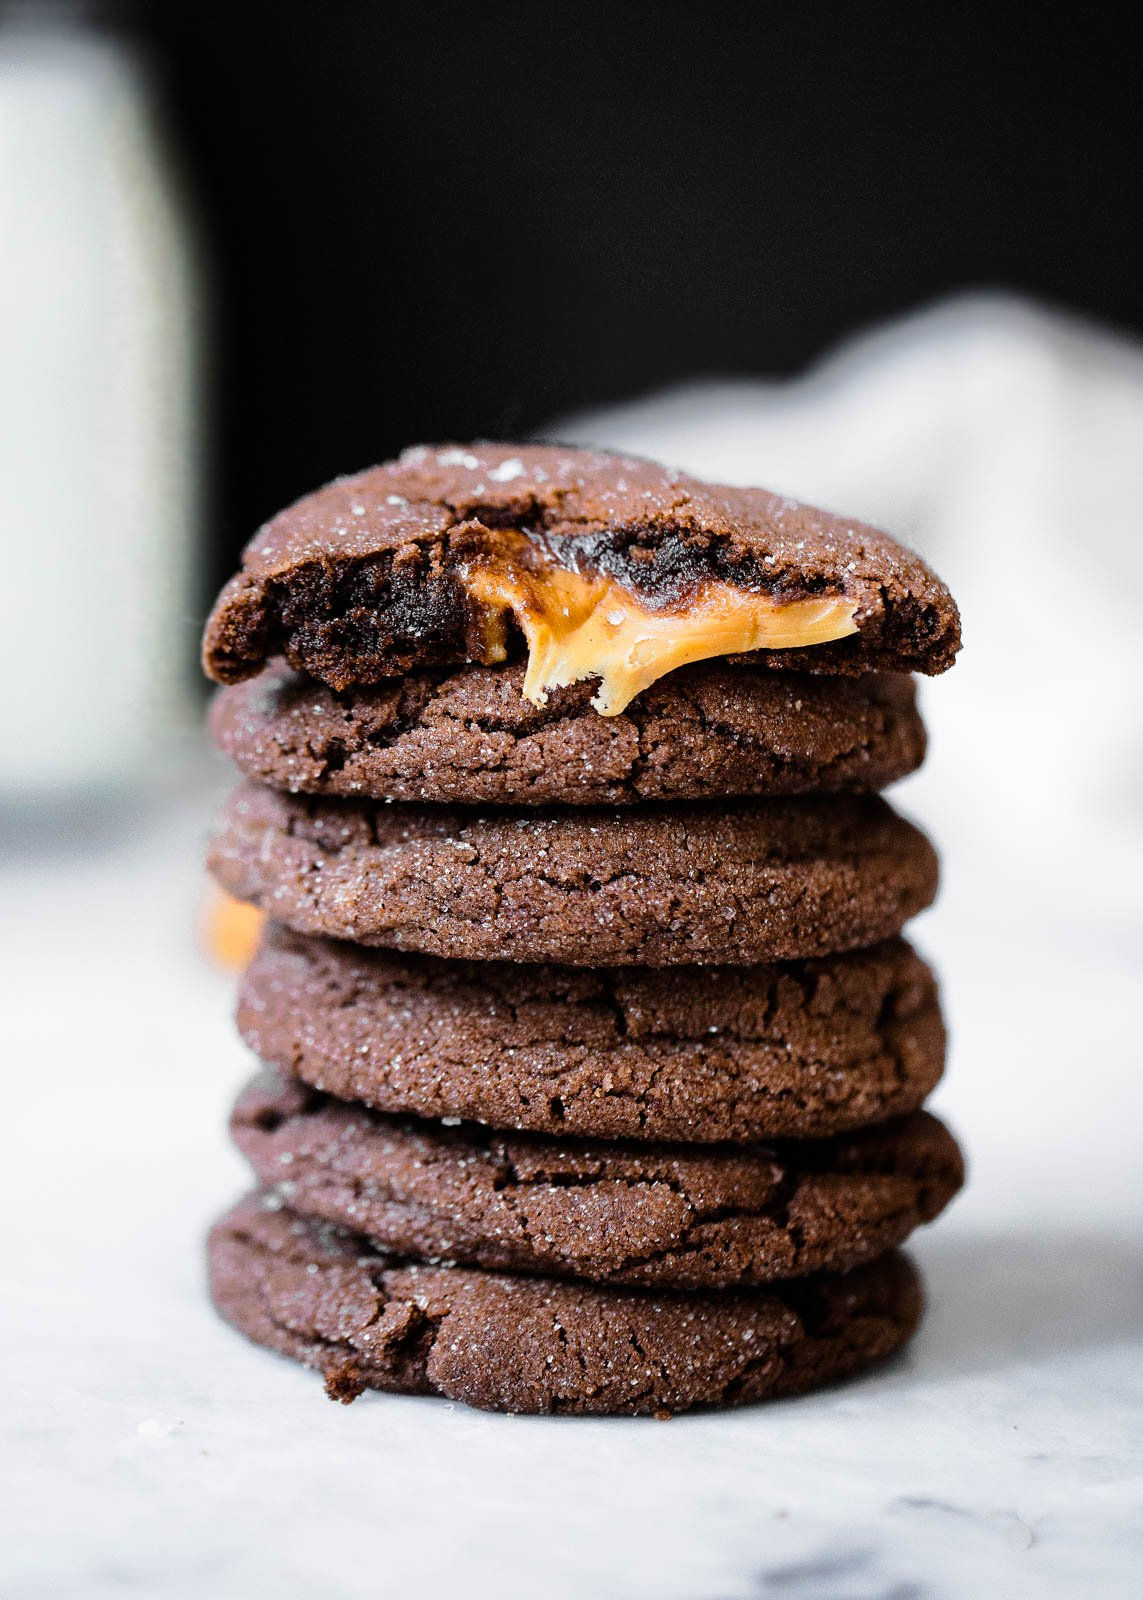 chocolate snickerdoodles stuffed with caramel in a stack